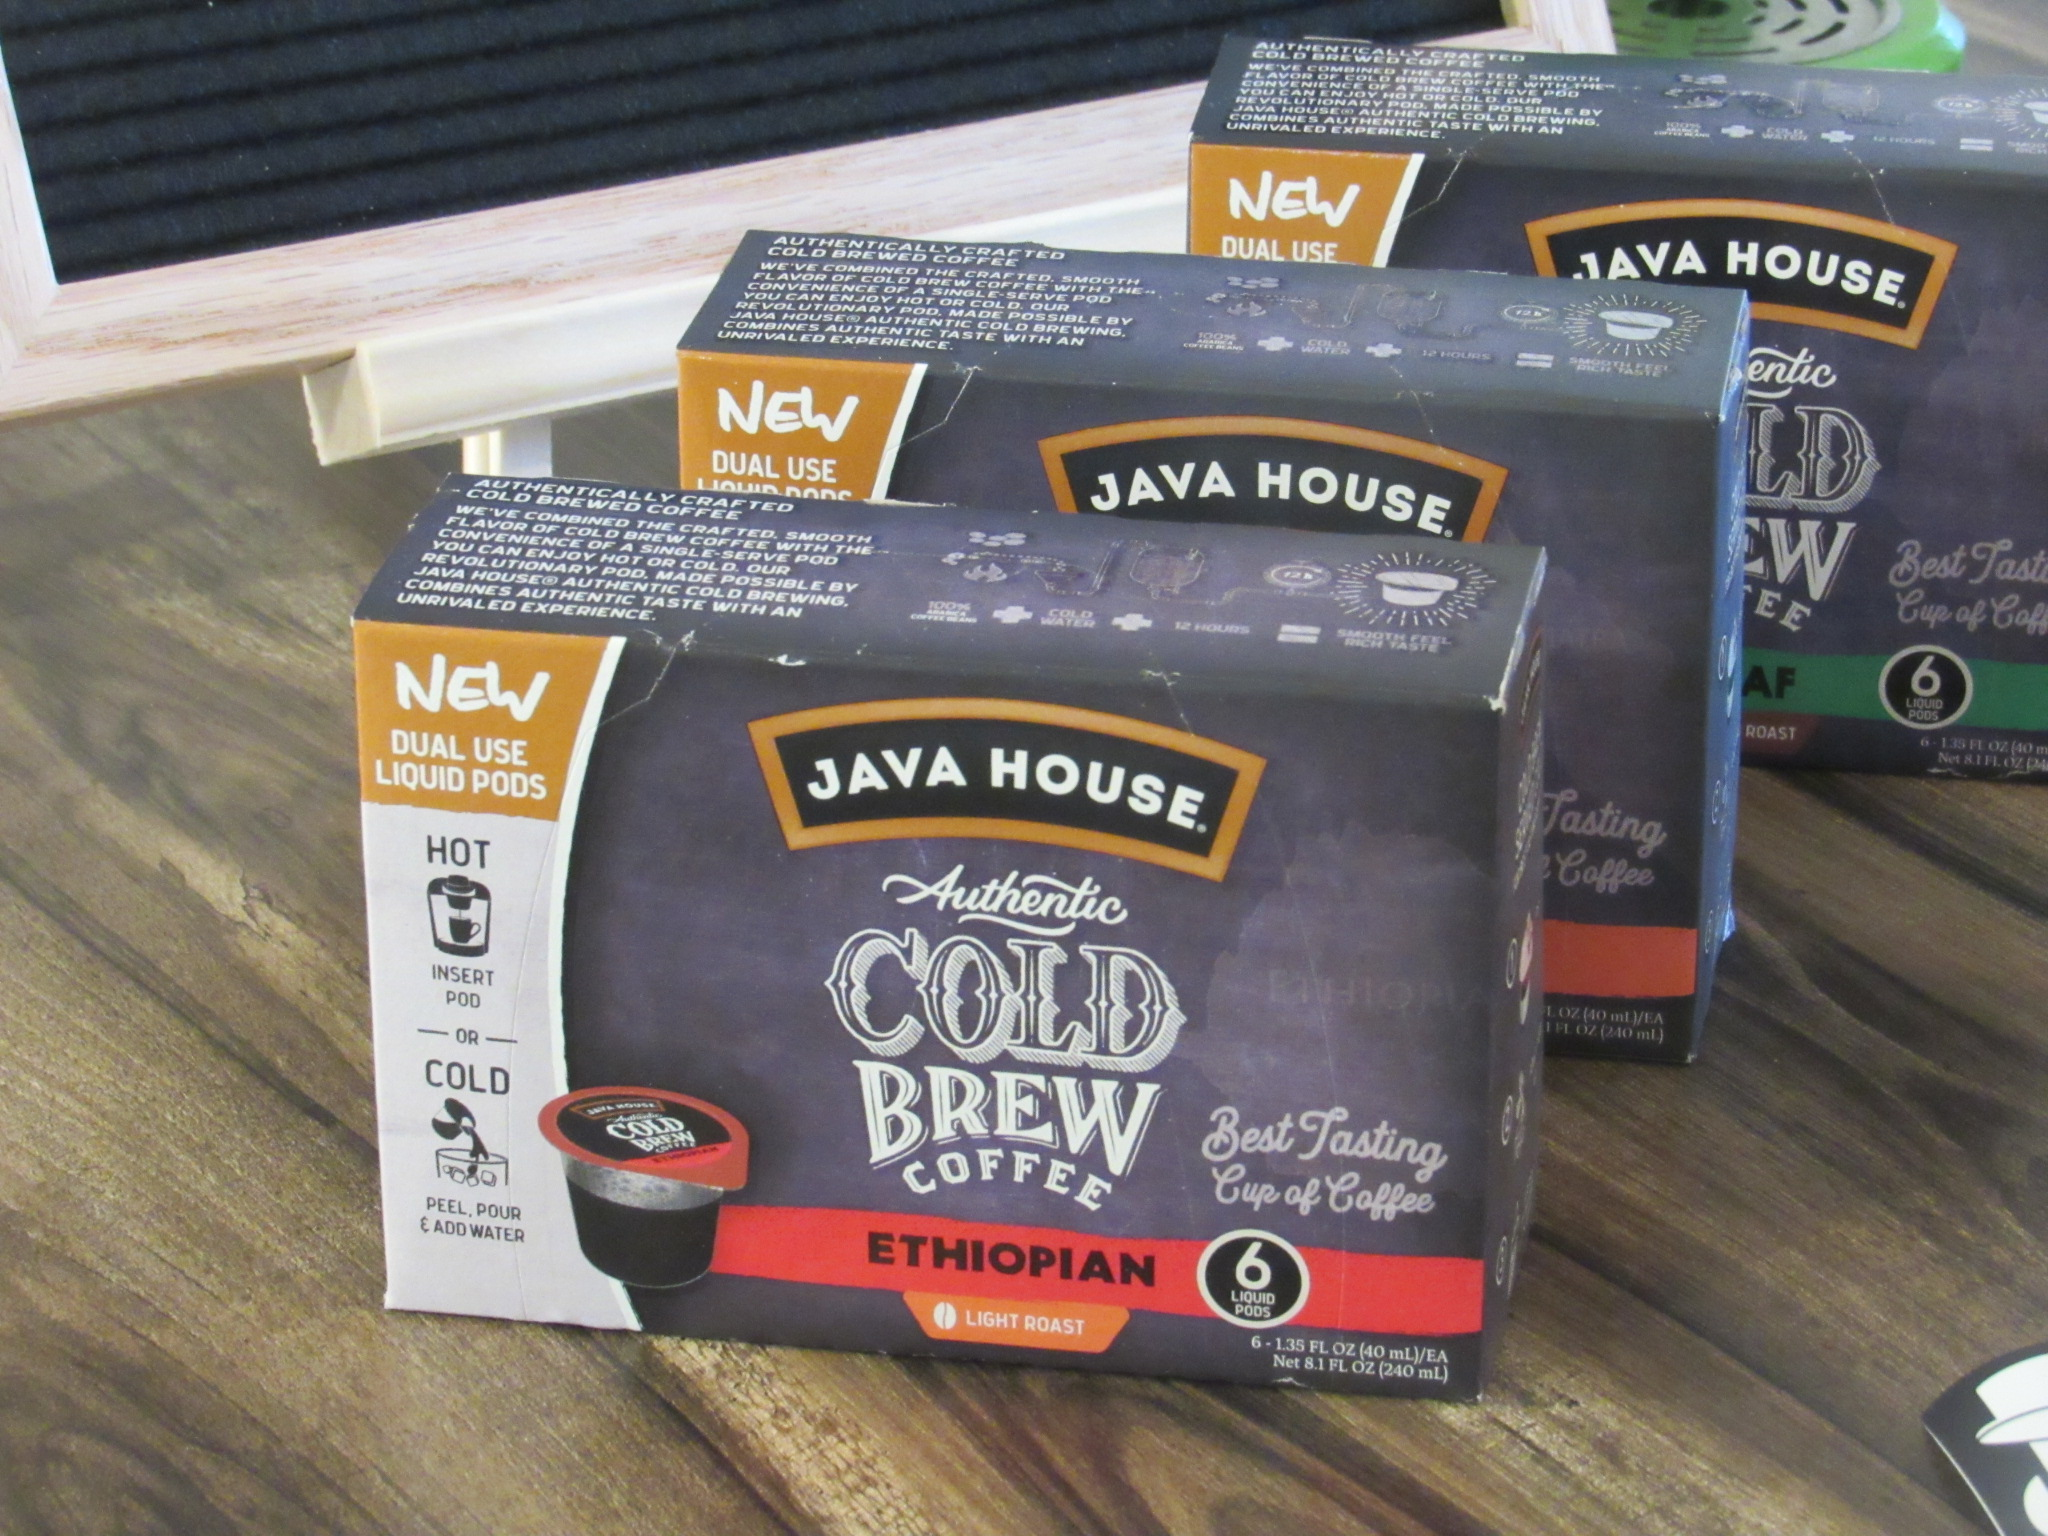 National Cold Brew Day April 20 Plus SAVINGS PROMO CODE #javahouse